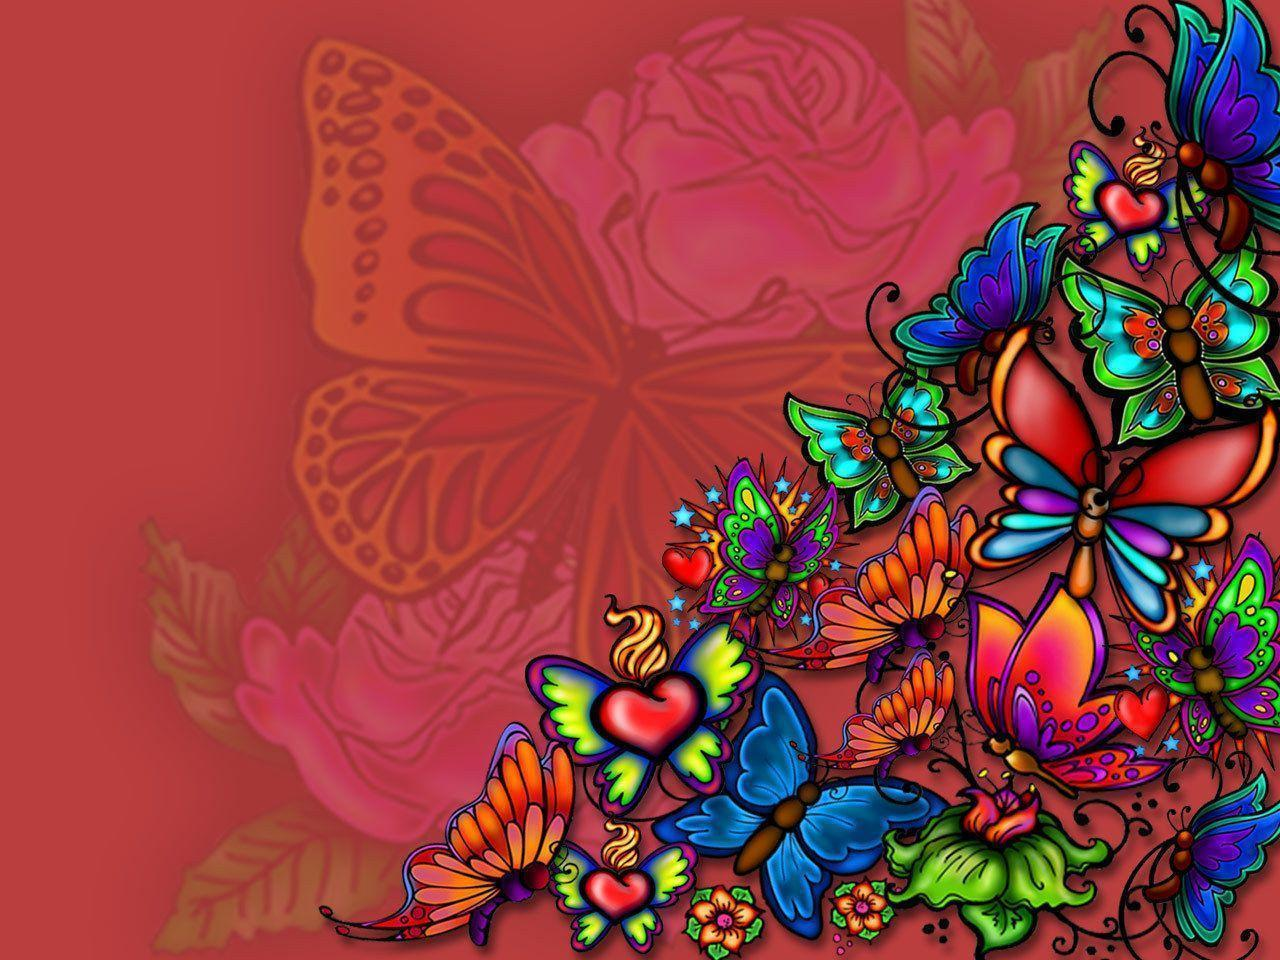 butterfly cool wallpaper hd | Wallput.com | wallpapers,themes,ect ...